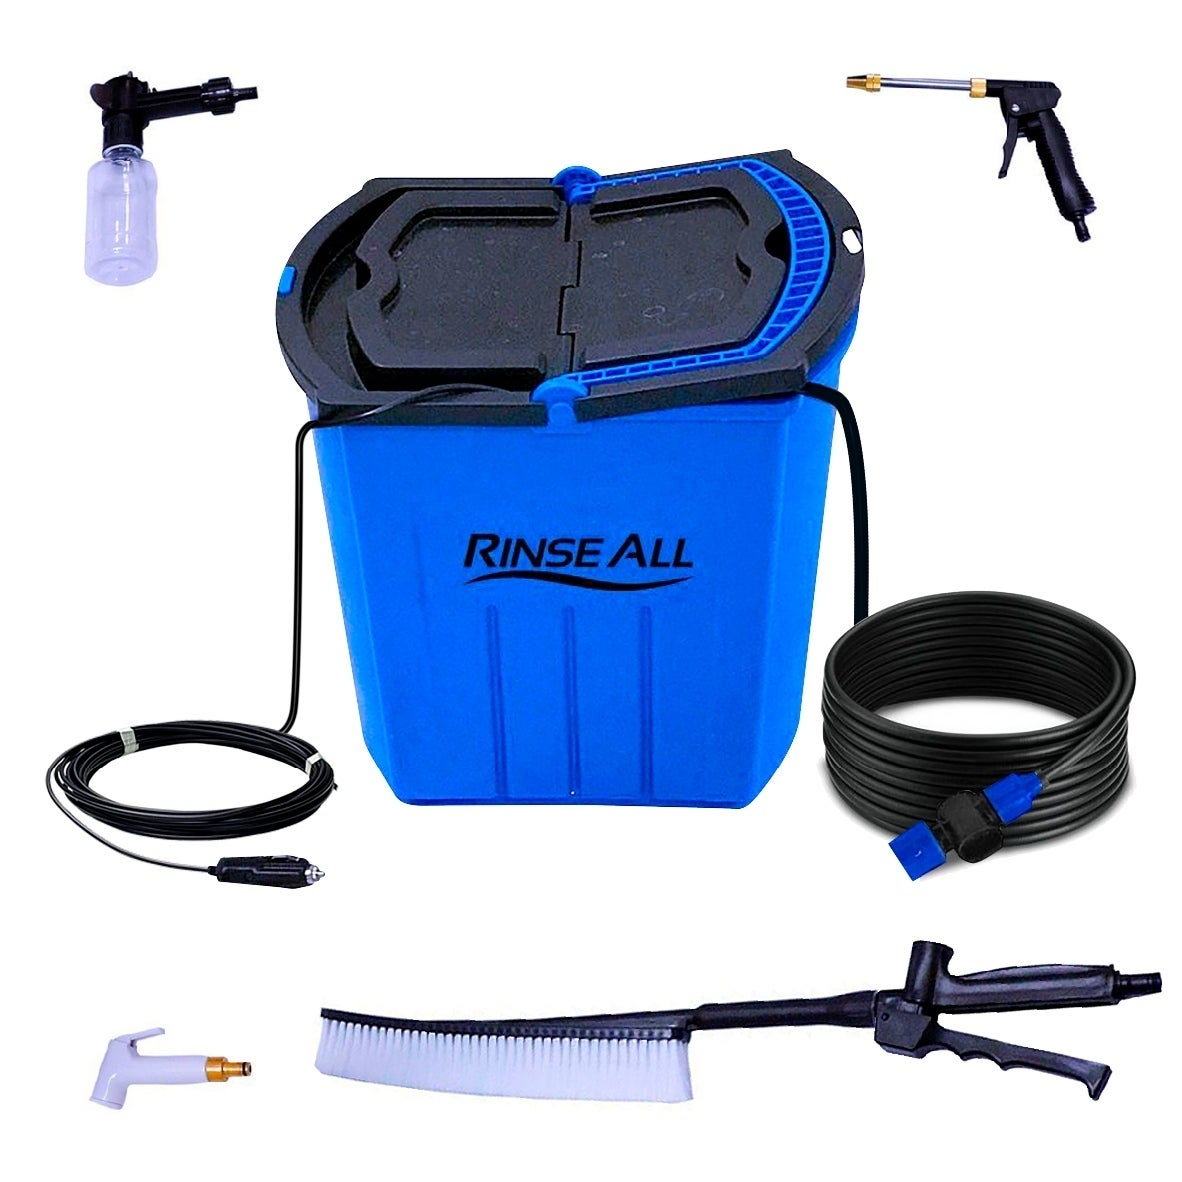 Rinse All EW10 -12V Powered Car Washer Kit - 7 Gallons Po...